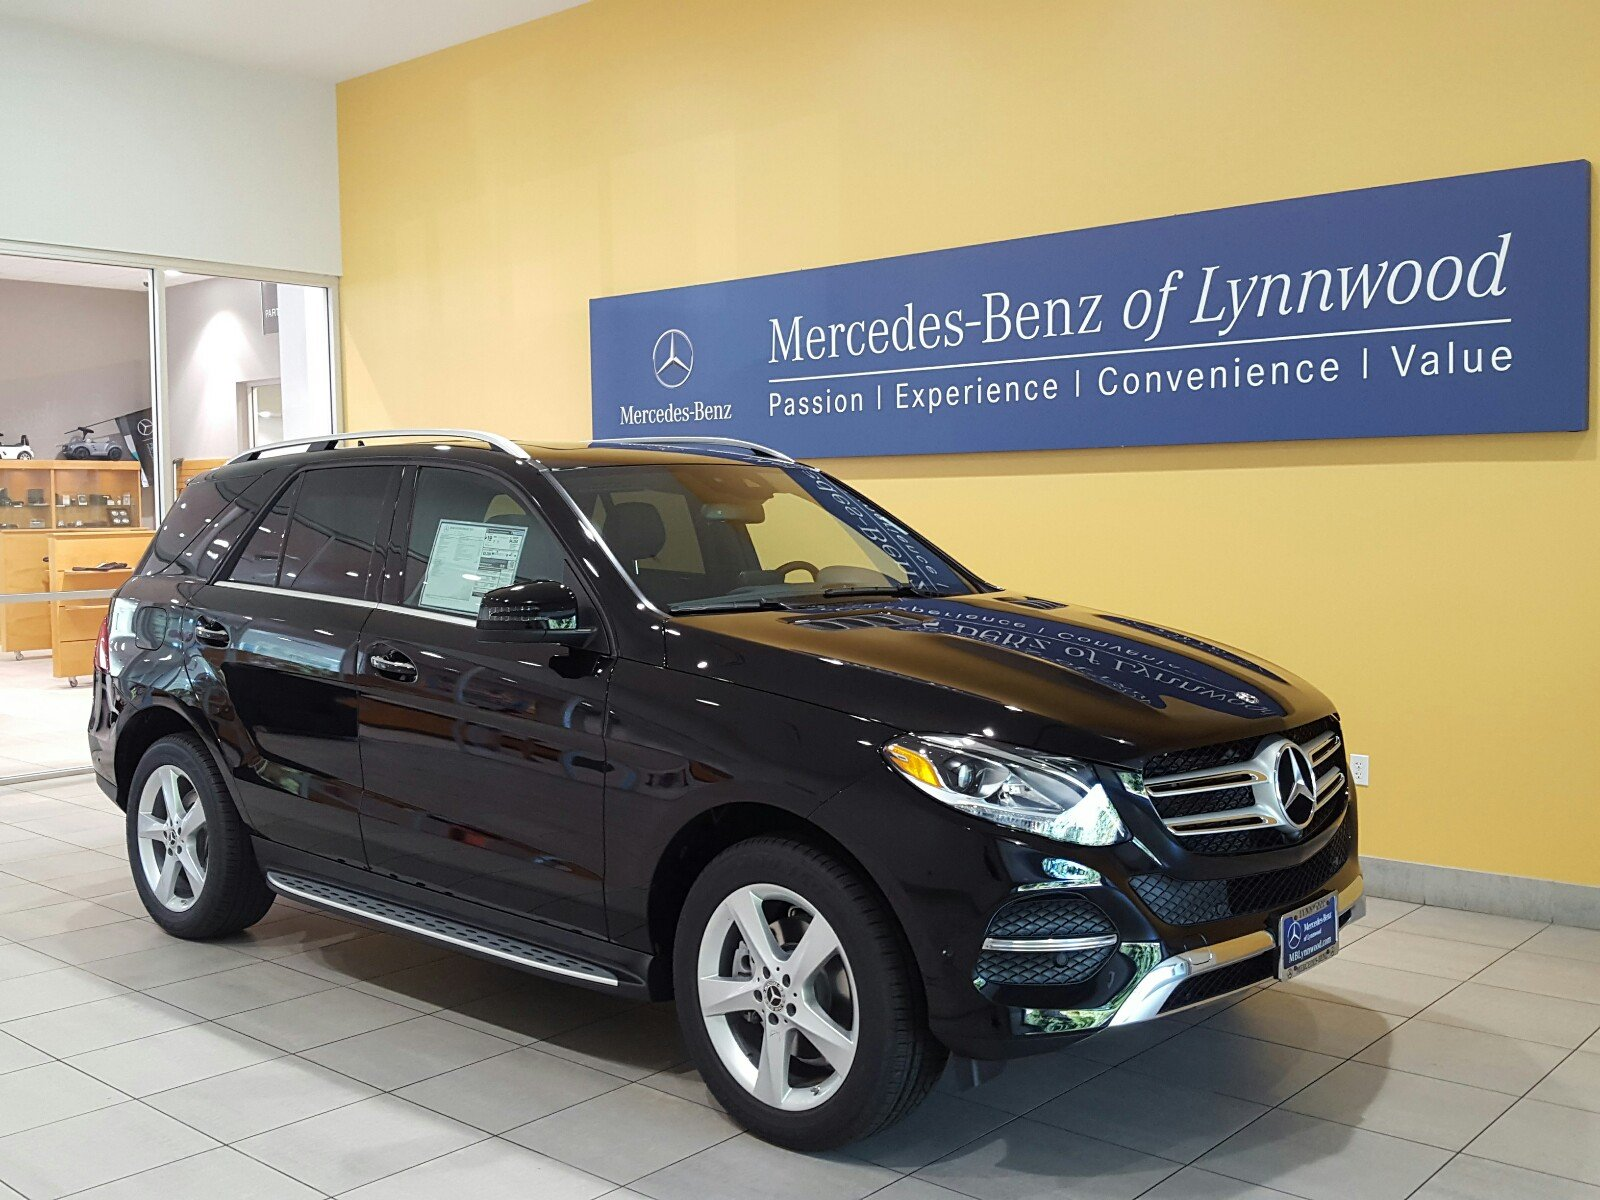 New 2018 mercedes benz gle gle 350 4matic suv in lynnwood for 2018 mercedes benz gle